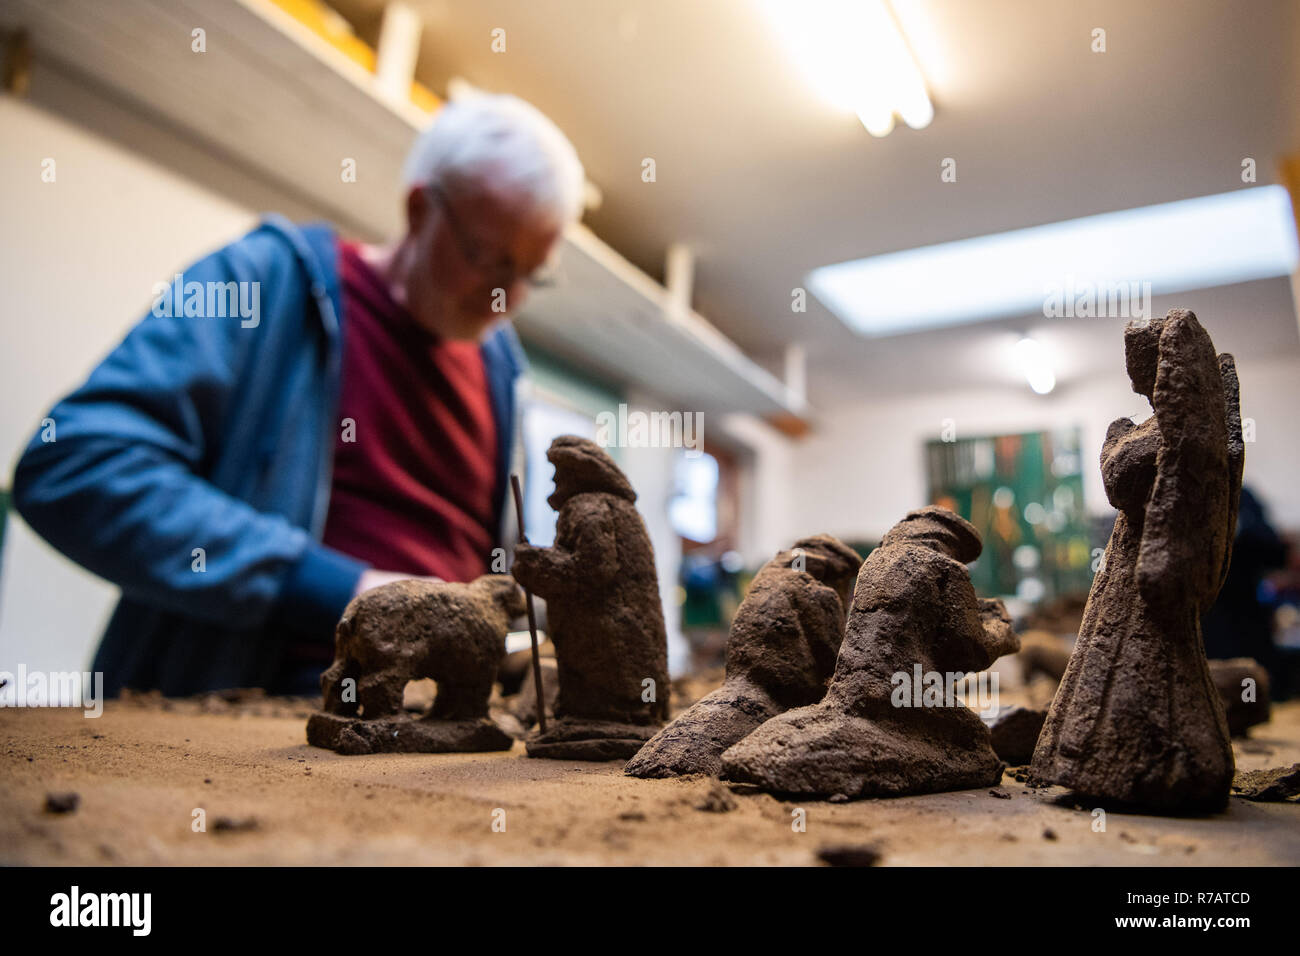 Saterland, Germany. 22nd Nov, 2018. Karl-Heinz Brinkmann carves Christmas figures from peat in his home workshop. The 64 year old Saterland artist works with many materials. But the dried white peat is special: it is 2000 years old. (to dpa '2000 years old: Christmas cribs from peat' from 09.12.2018) Credit: Mohssen Assanimoghaddam/dpa/Alamy Live News - Stock Image